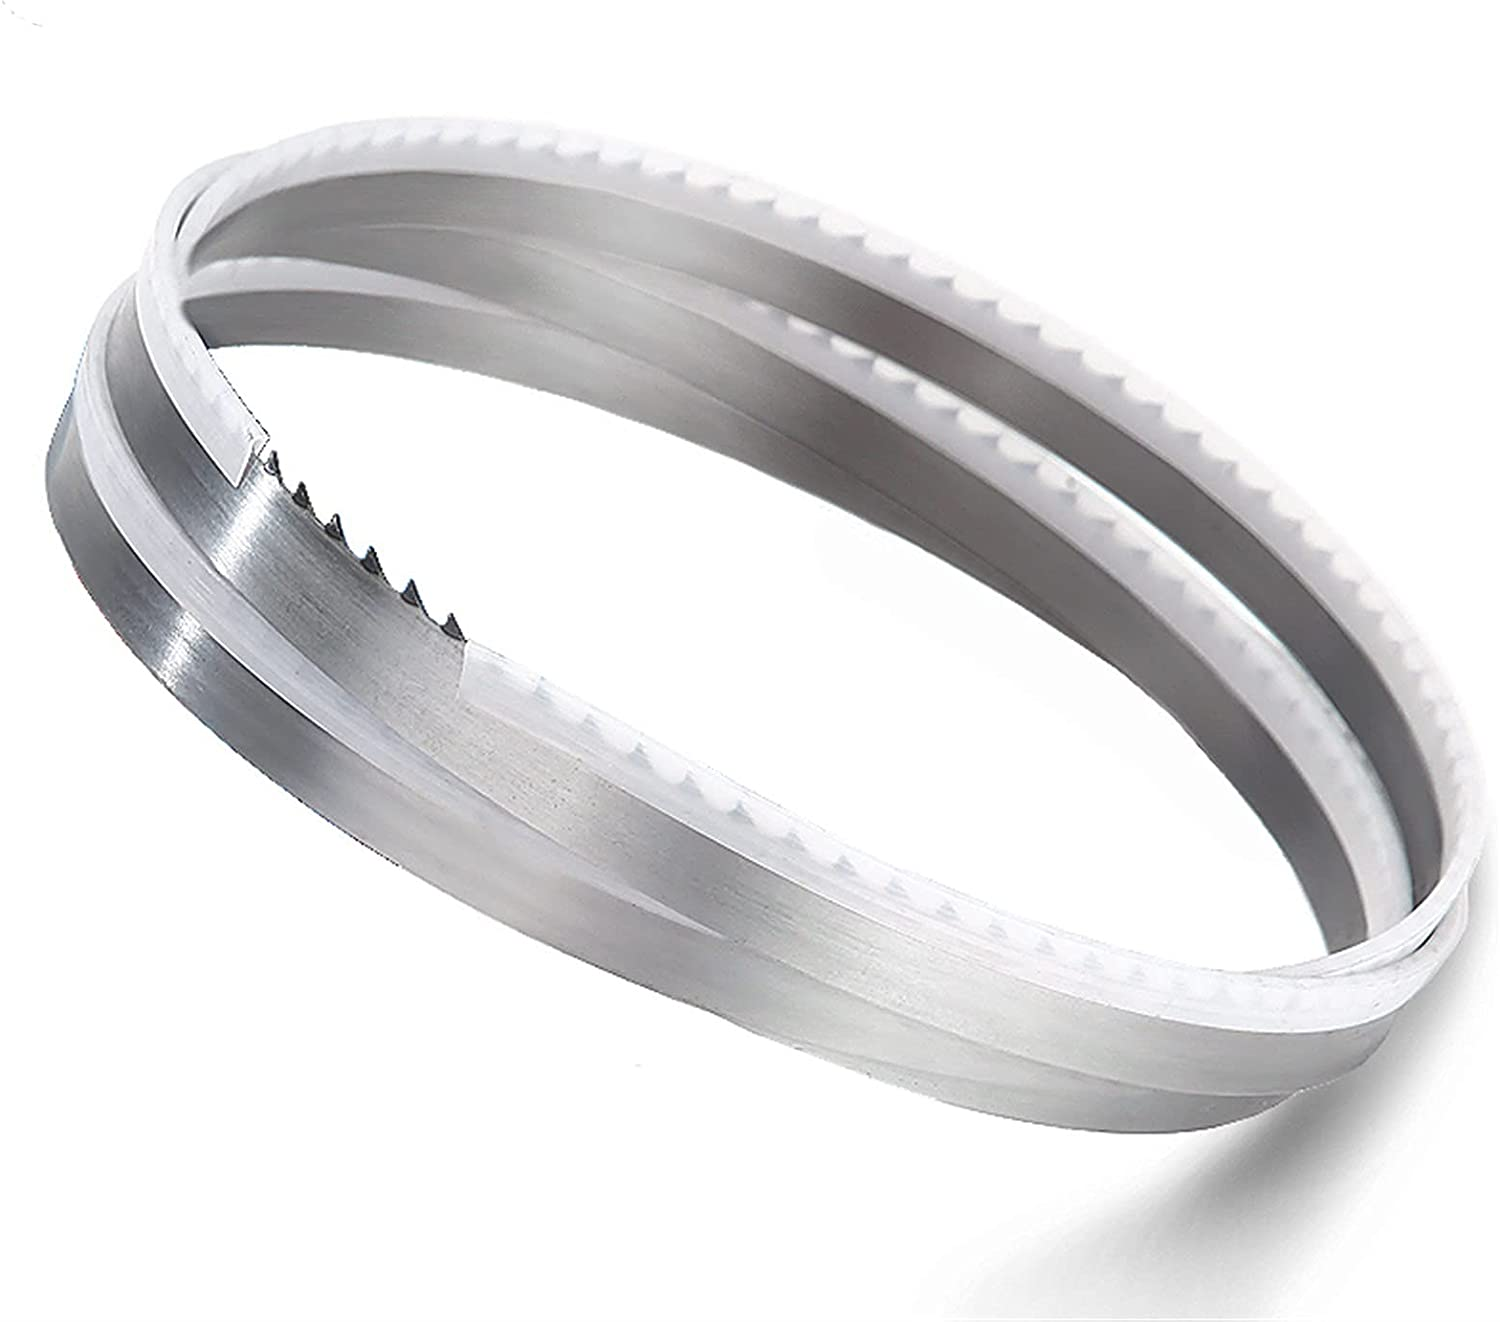 ADUCI 2 Pieces 1550 16 0.55mm 4Tpi Meat Band Saw Blade.160.55155